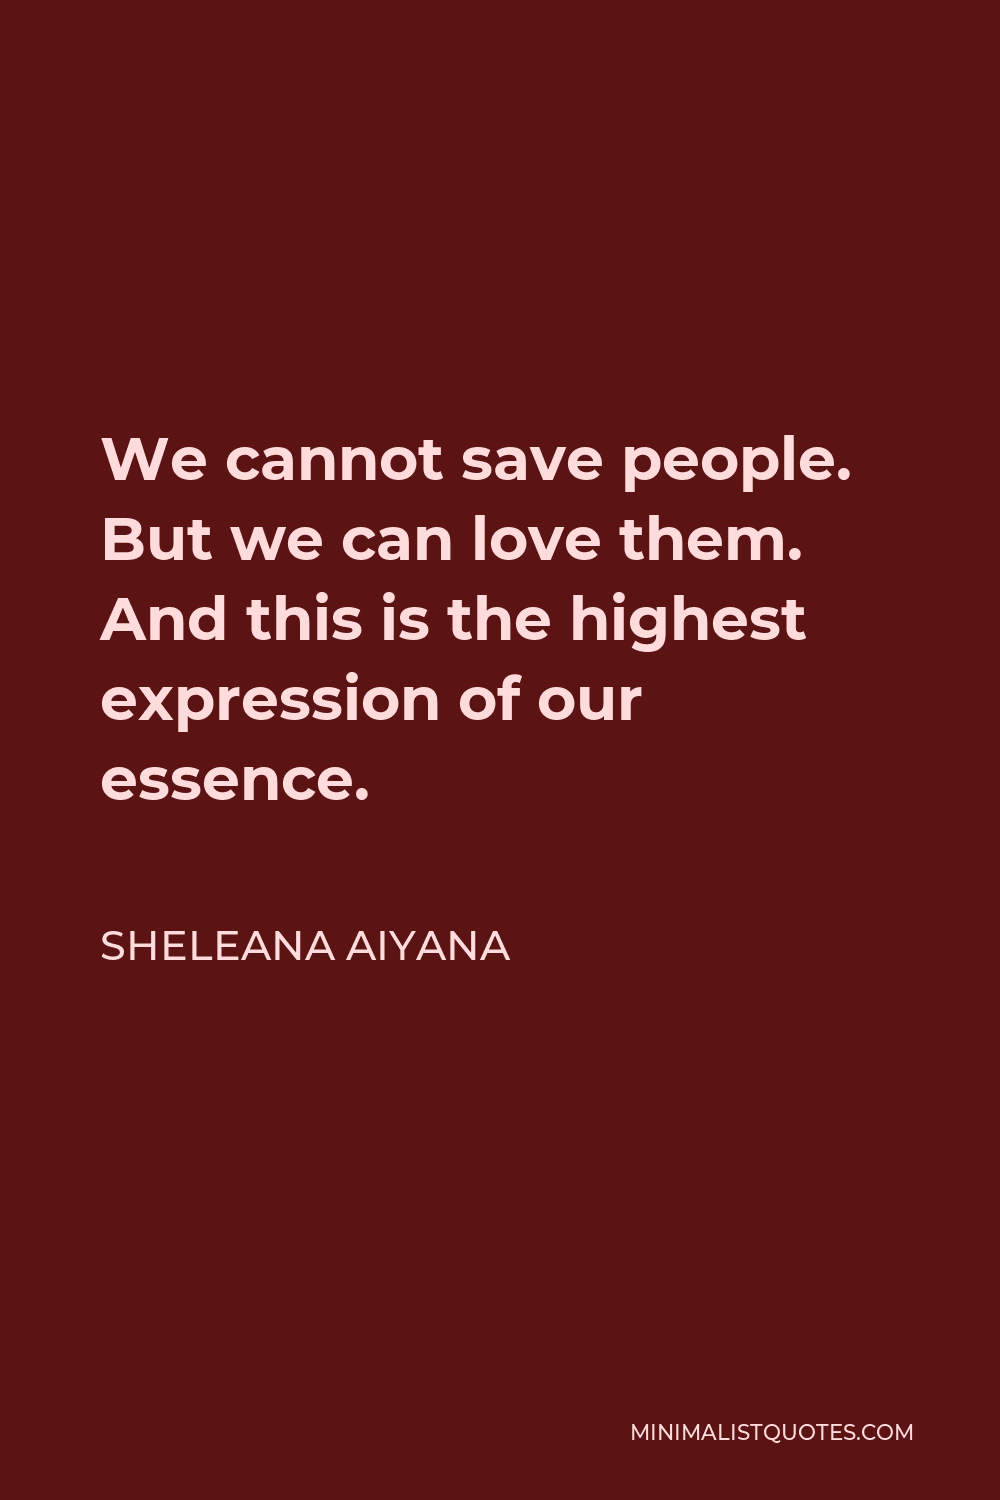 Sheleana Aiyana Quote - We cannot save people. But we can love them. And this is the highest expression of our essence.